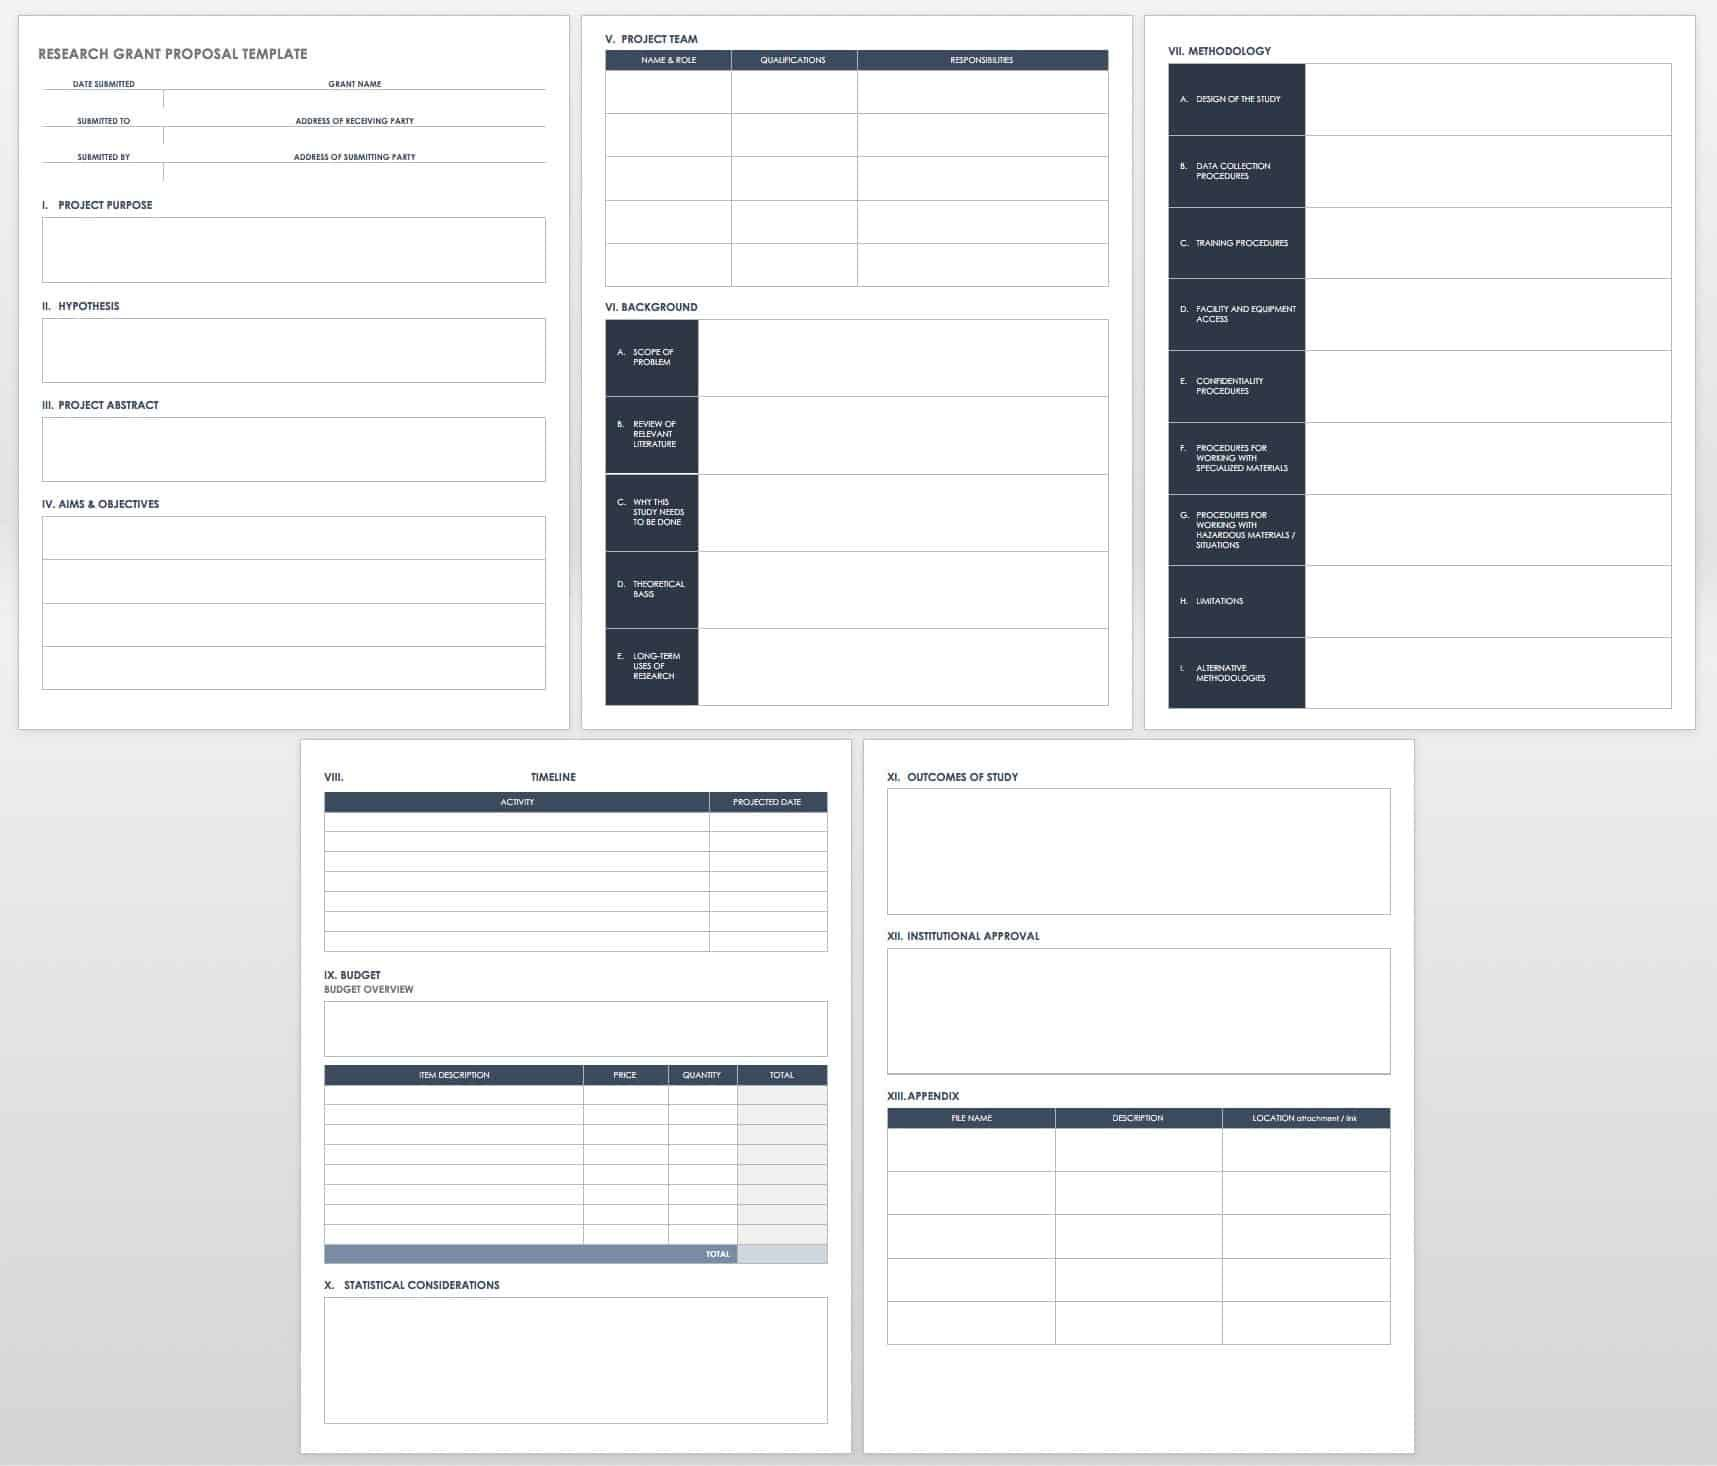 007 Unforgettable Request For Proposal Template Excel Image Full